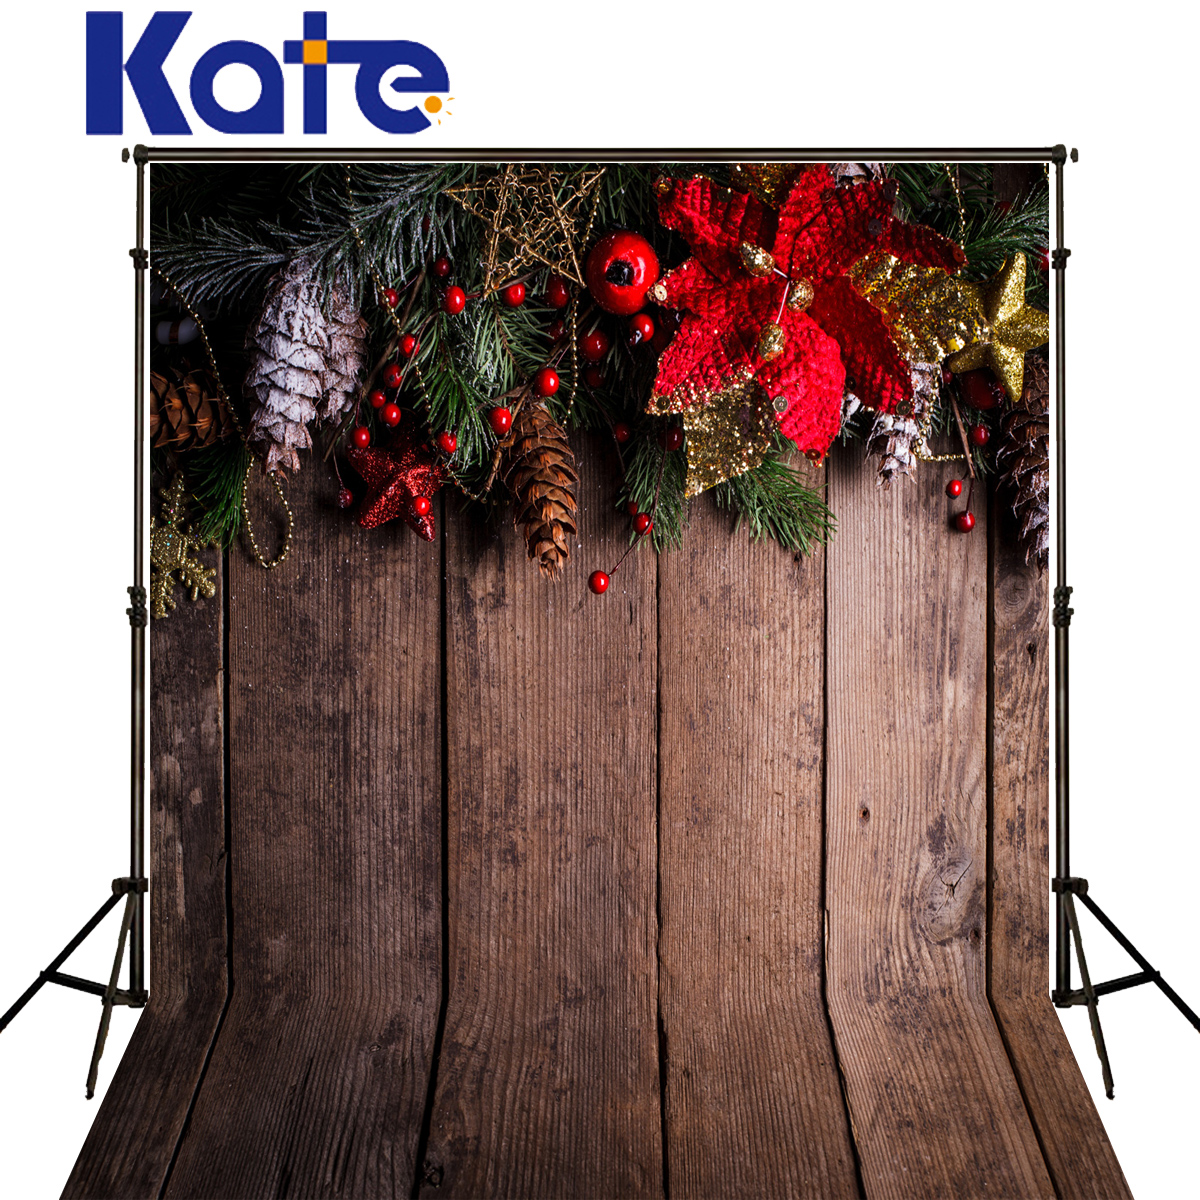 KATE Photo Background Christmas Photography Backdrops Wooden Plank Backdrop Decoracion Navidad Vintage Background for Studio